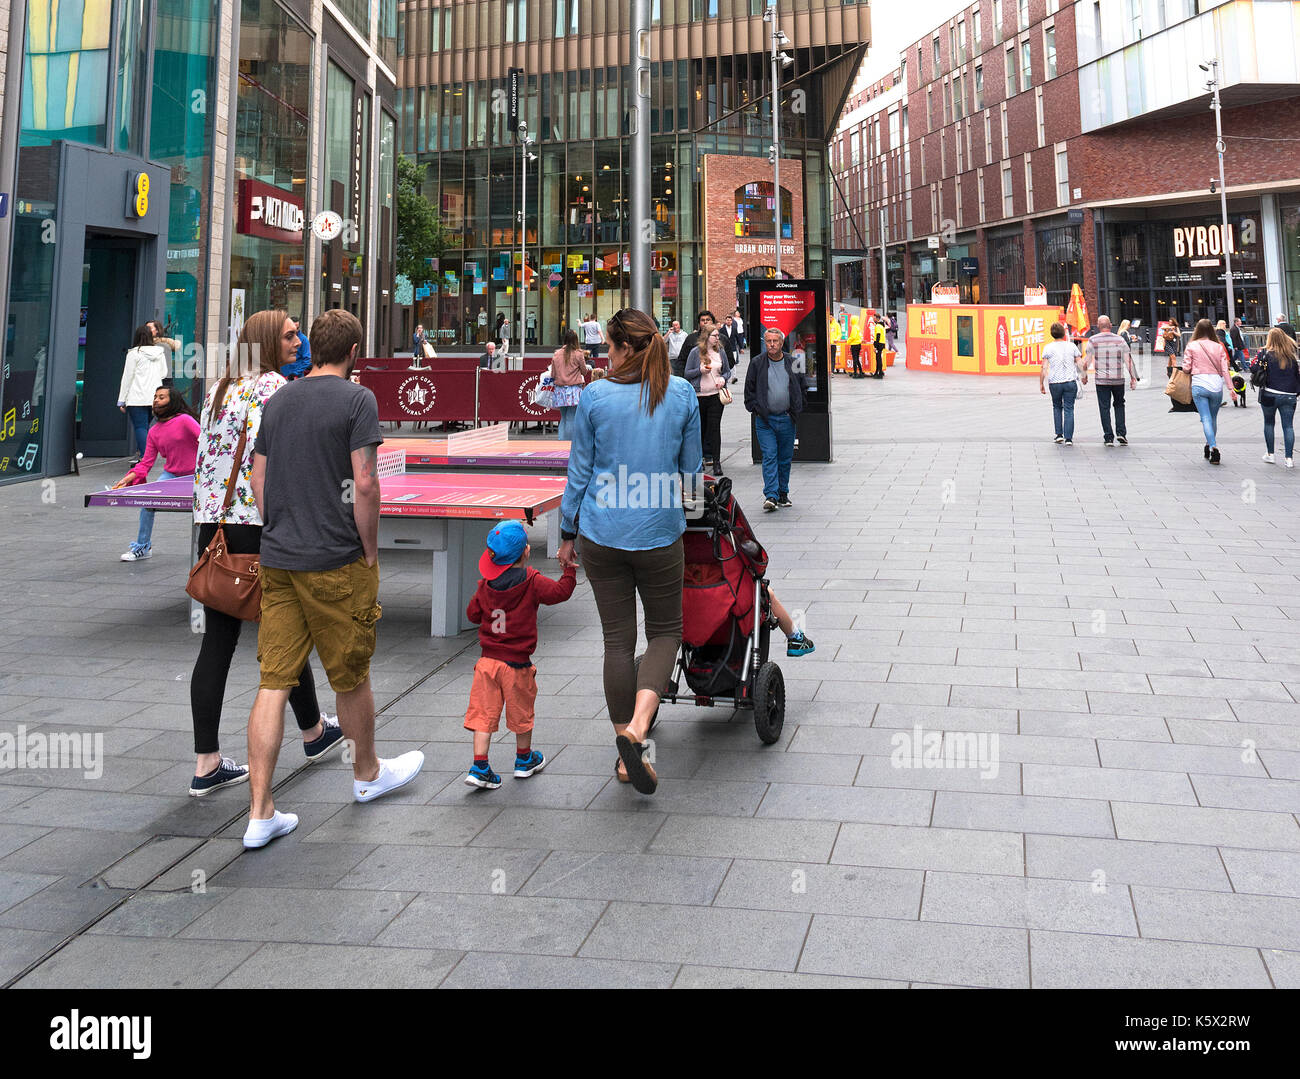 families shopping in liverpool one city centre stores, england, uk, - Stock Image